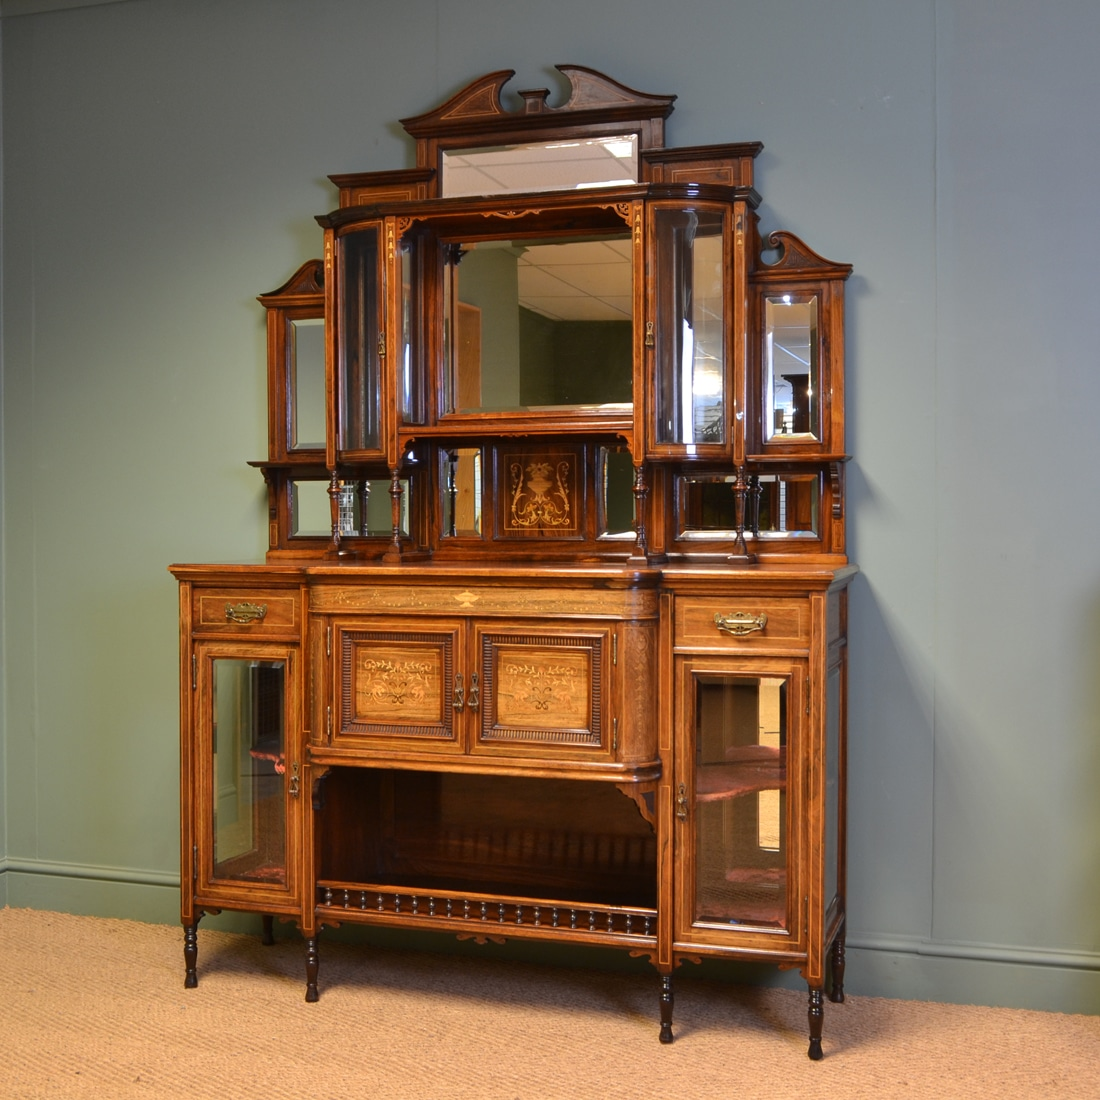 Spectacular Exhibition Quality Inlaid Rosewood Antique Victorian Display  Cabinet - Spectacular Exhibition Quality Inlaid Rosewood Antique Victorian